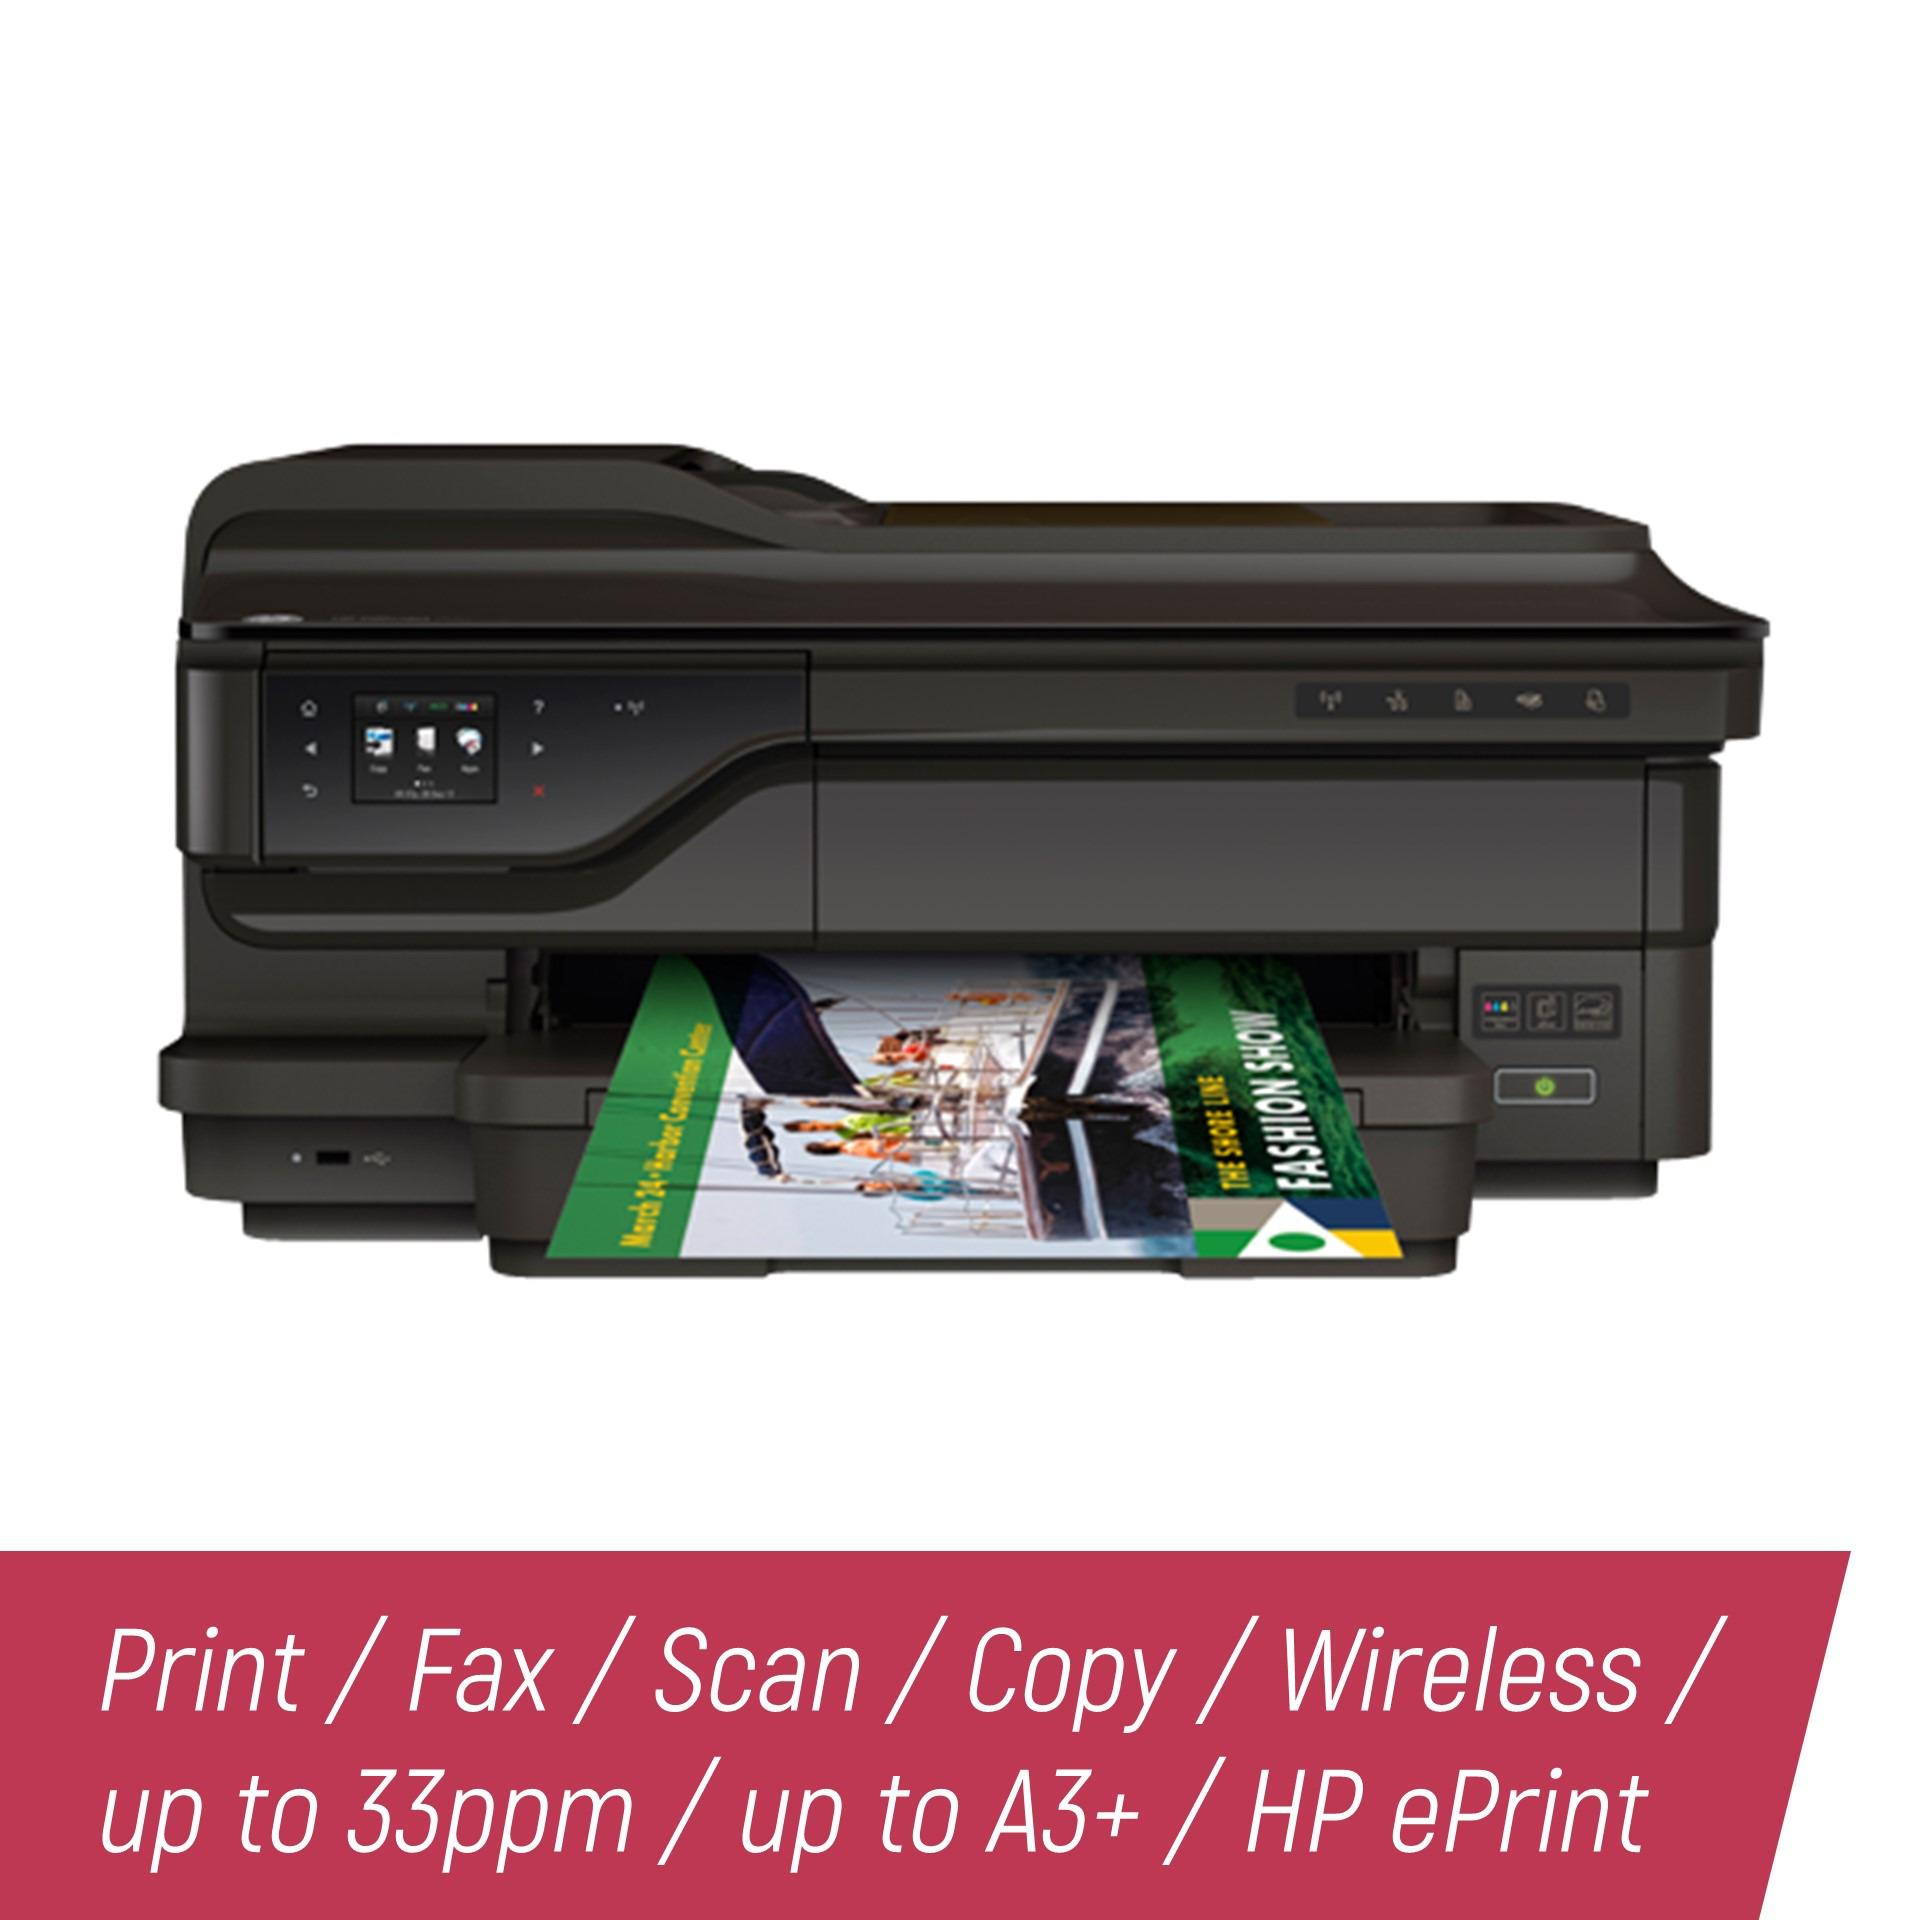 Hp Philippines Printers For Sale Prices Reviews Lazada Tinta Printer Gt 51 Black Original Officejet 7612 Wide Format Eaio W Duplexer Print Fax Scan